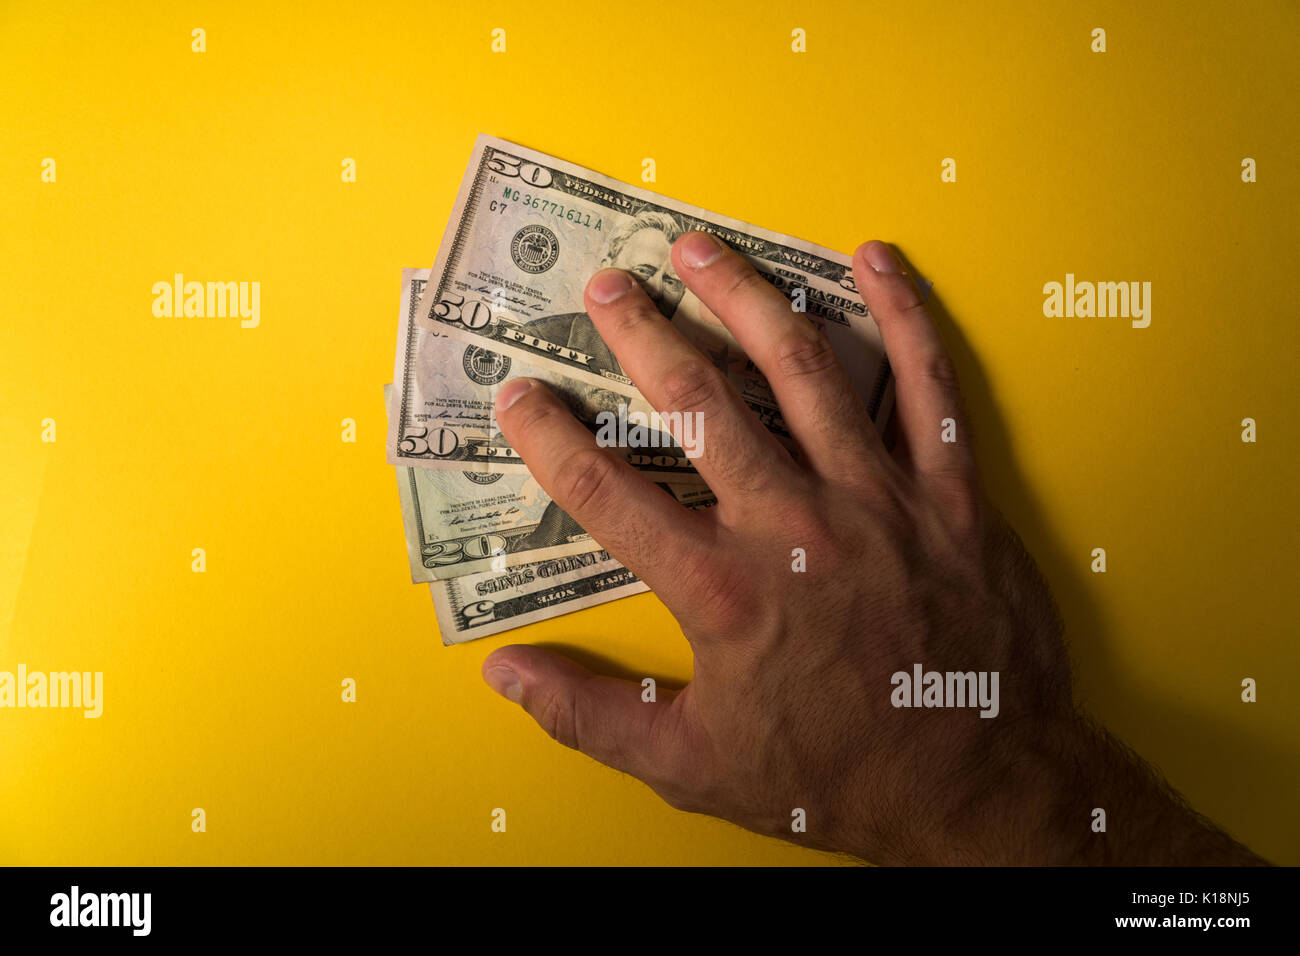 The man's hand covered the dollars banknotes. Protecting your money. Lack of money. Dollars banknotes closeup. Stock Photo